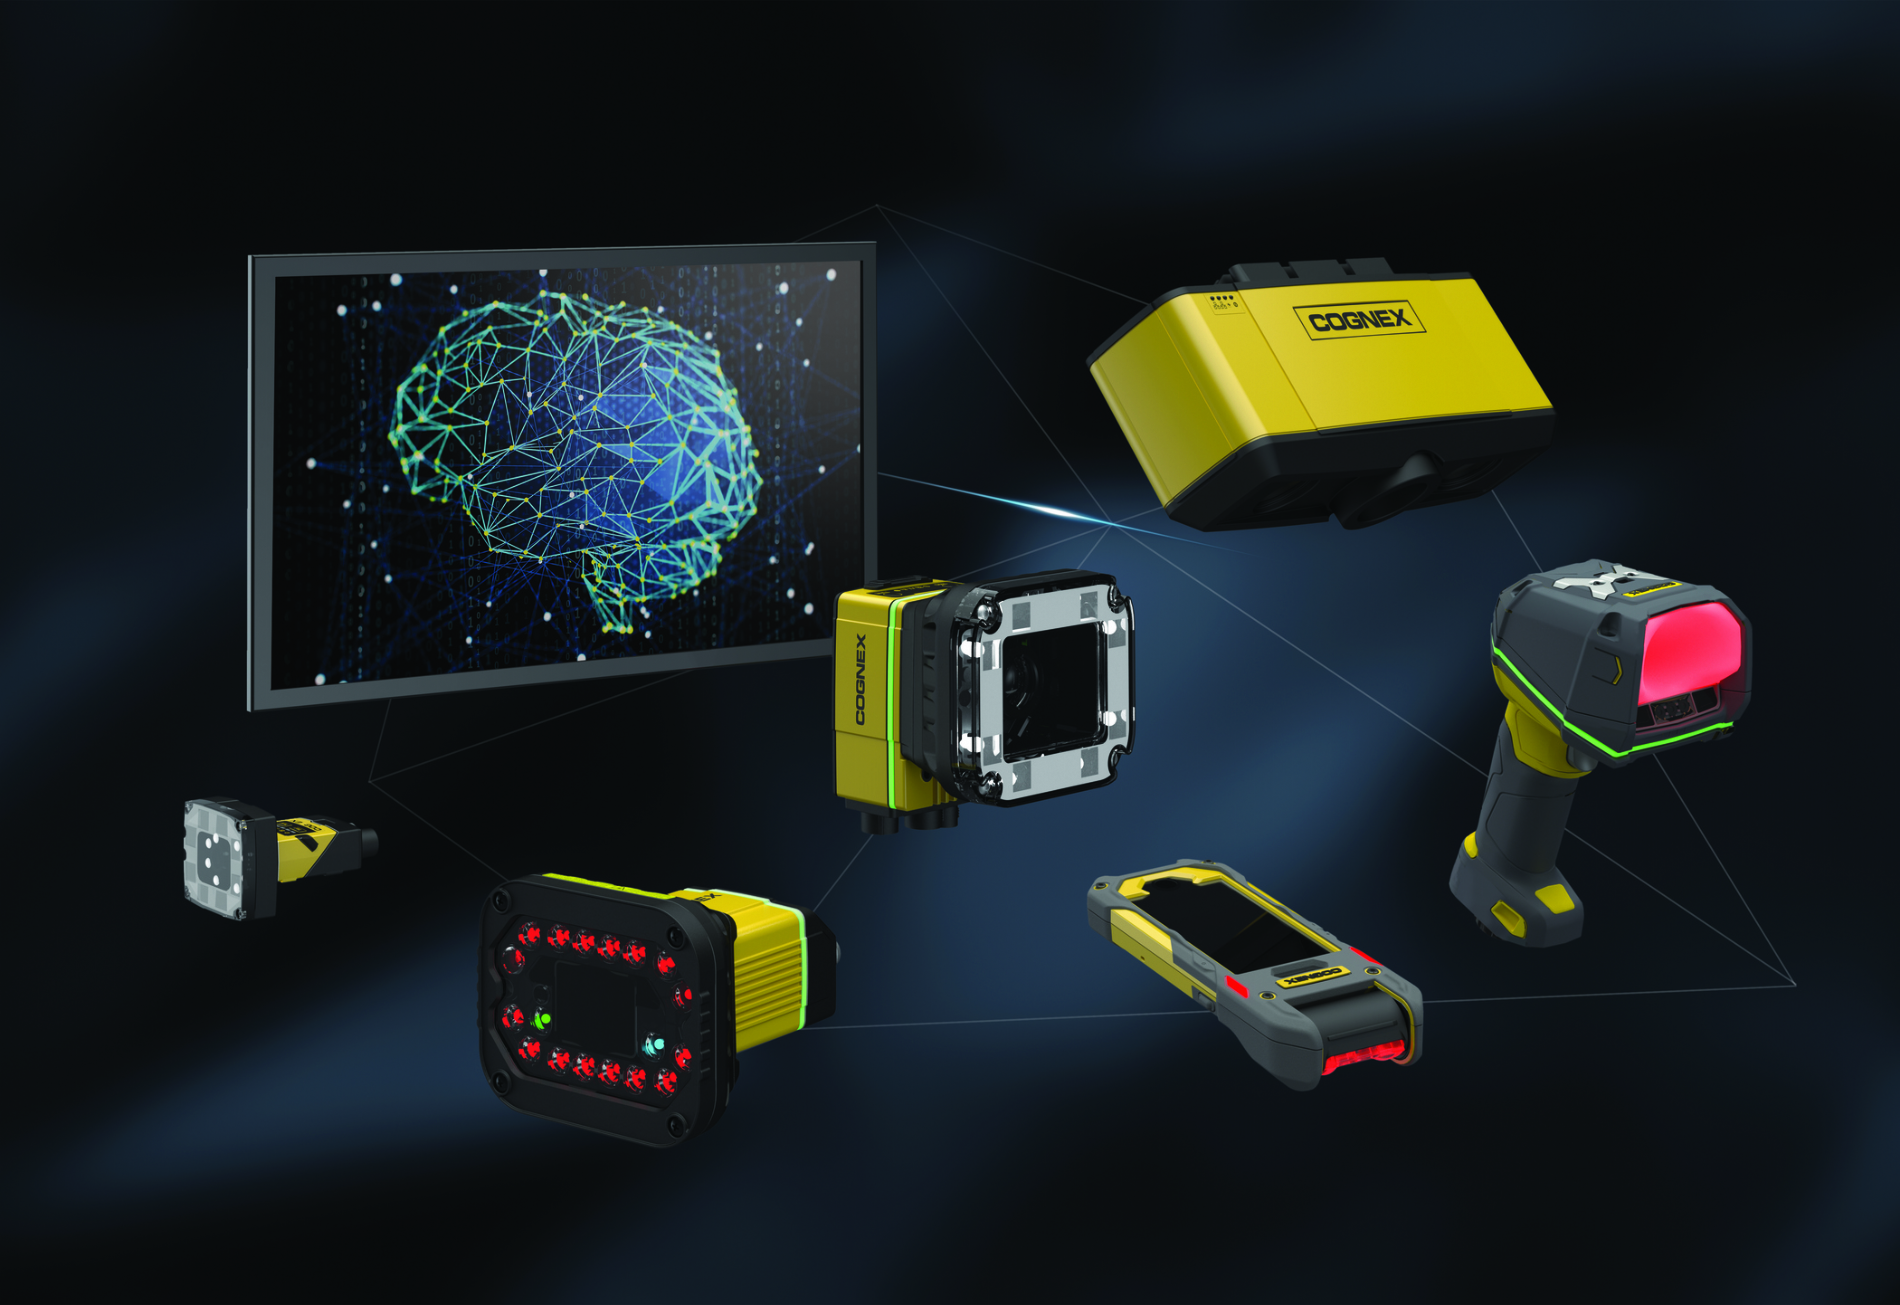 COGNEX INTERNATIONAL